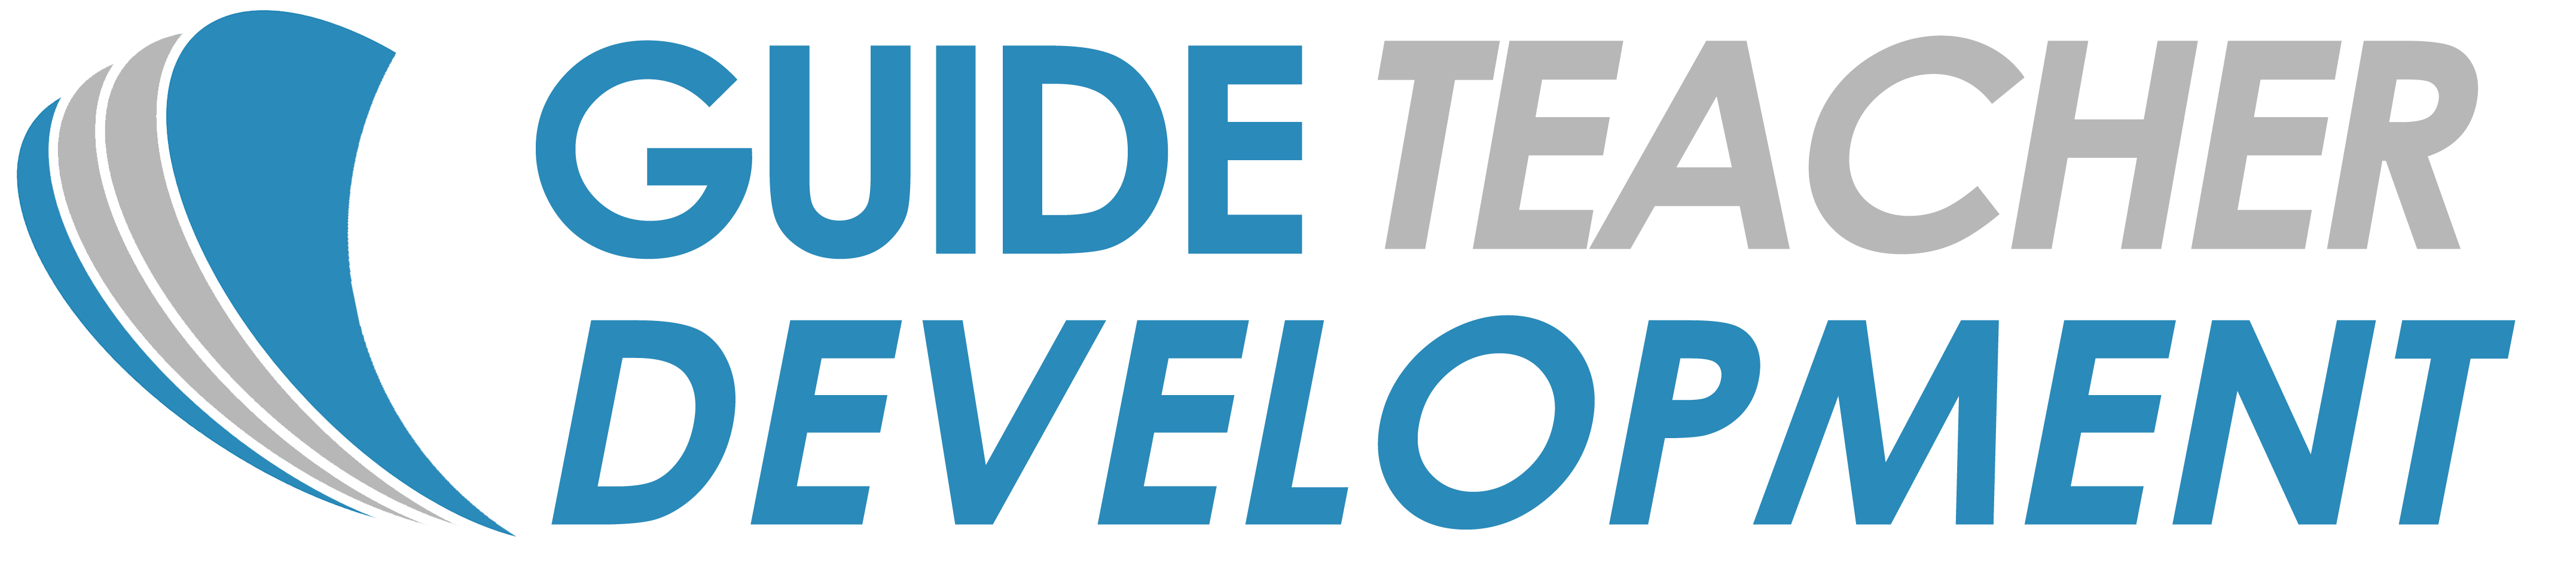 Guide Teacher Development logo